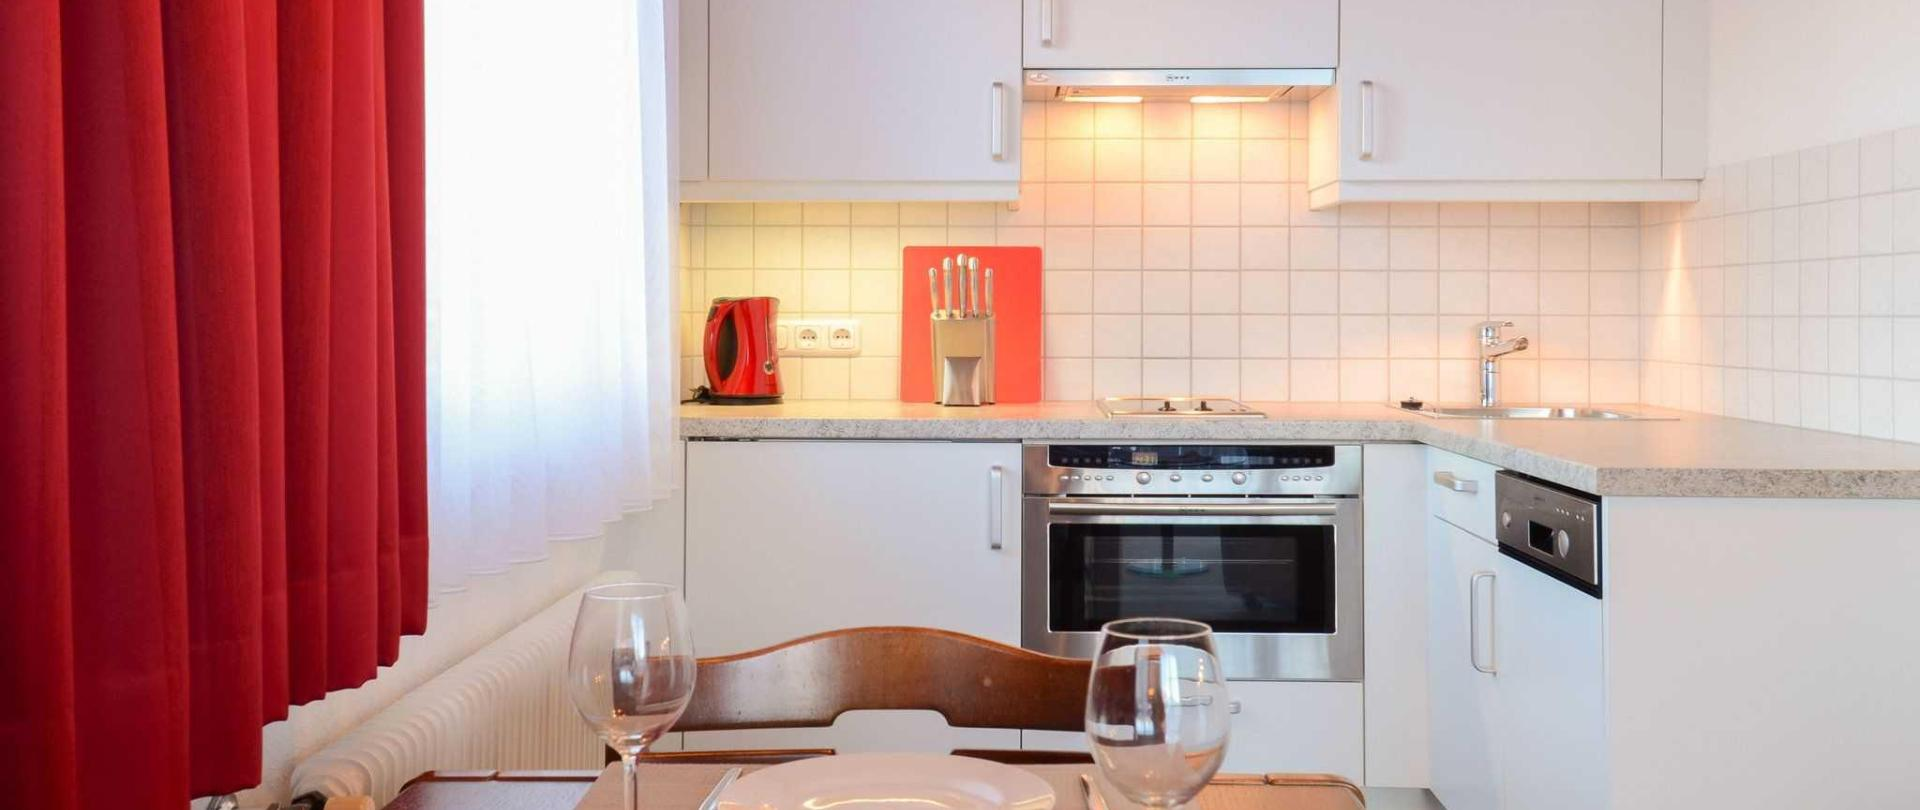 haus-strutzenberger-apartment-1-kitchen-and-dining.jpg